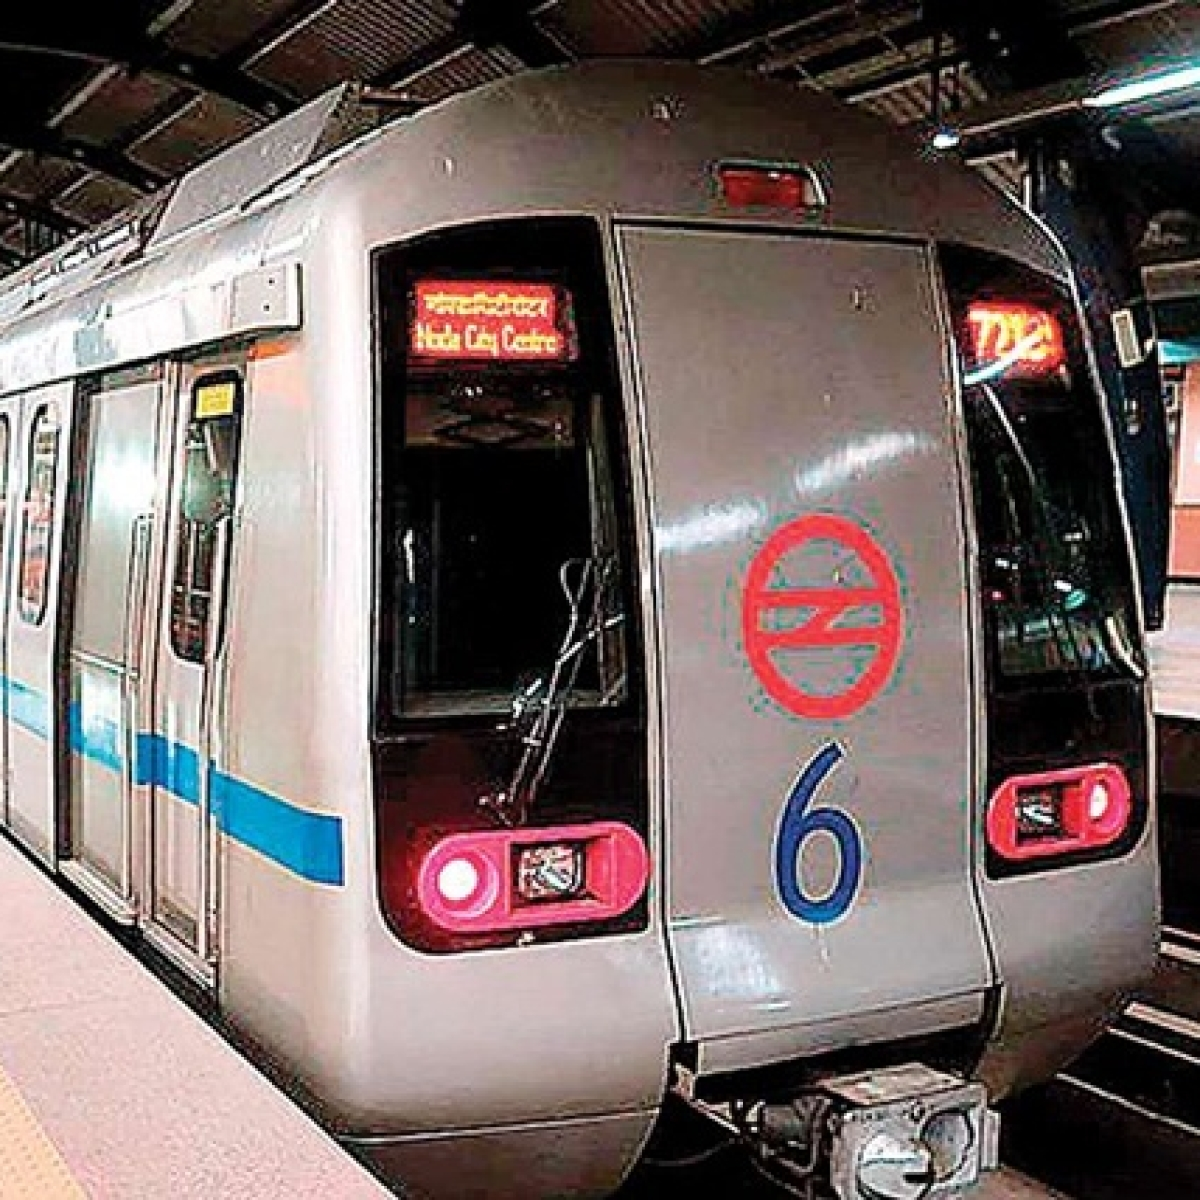 Delhi: Normal service resumes on entire DMRC network, all stations opened